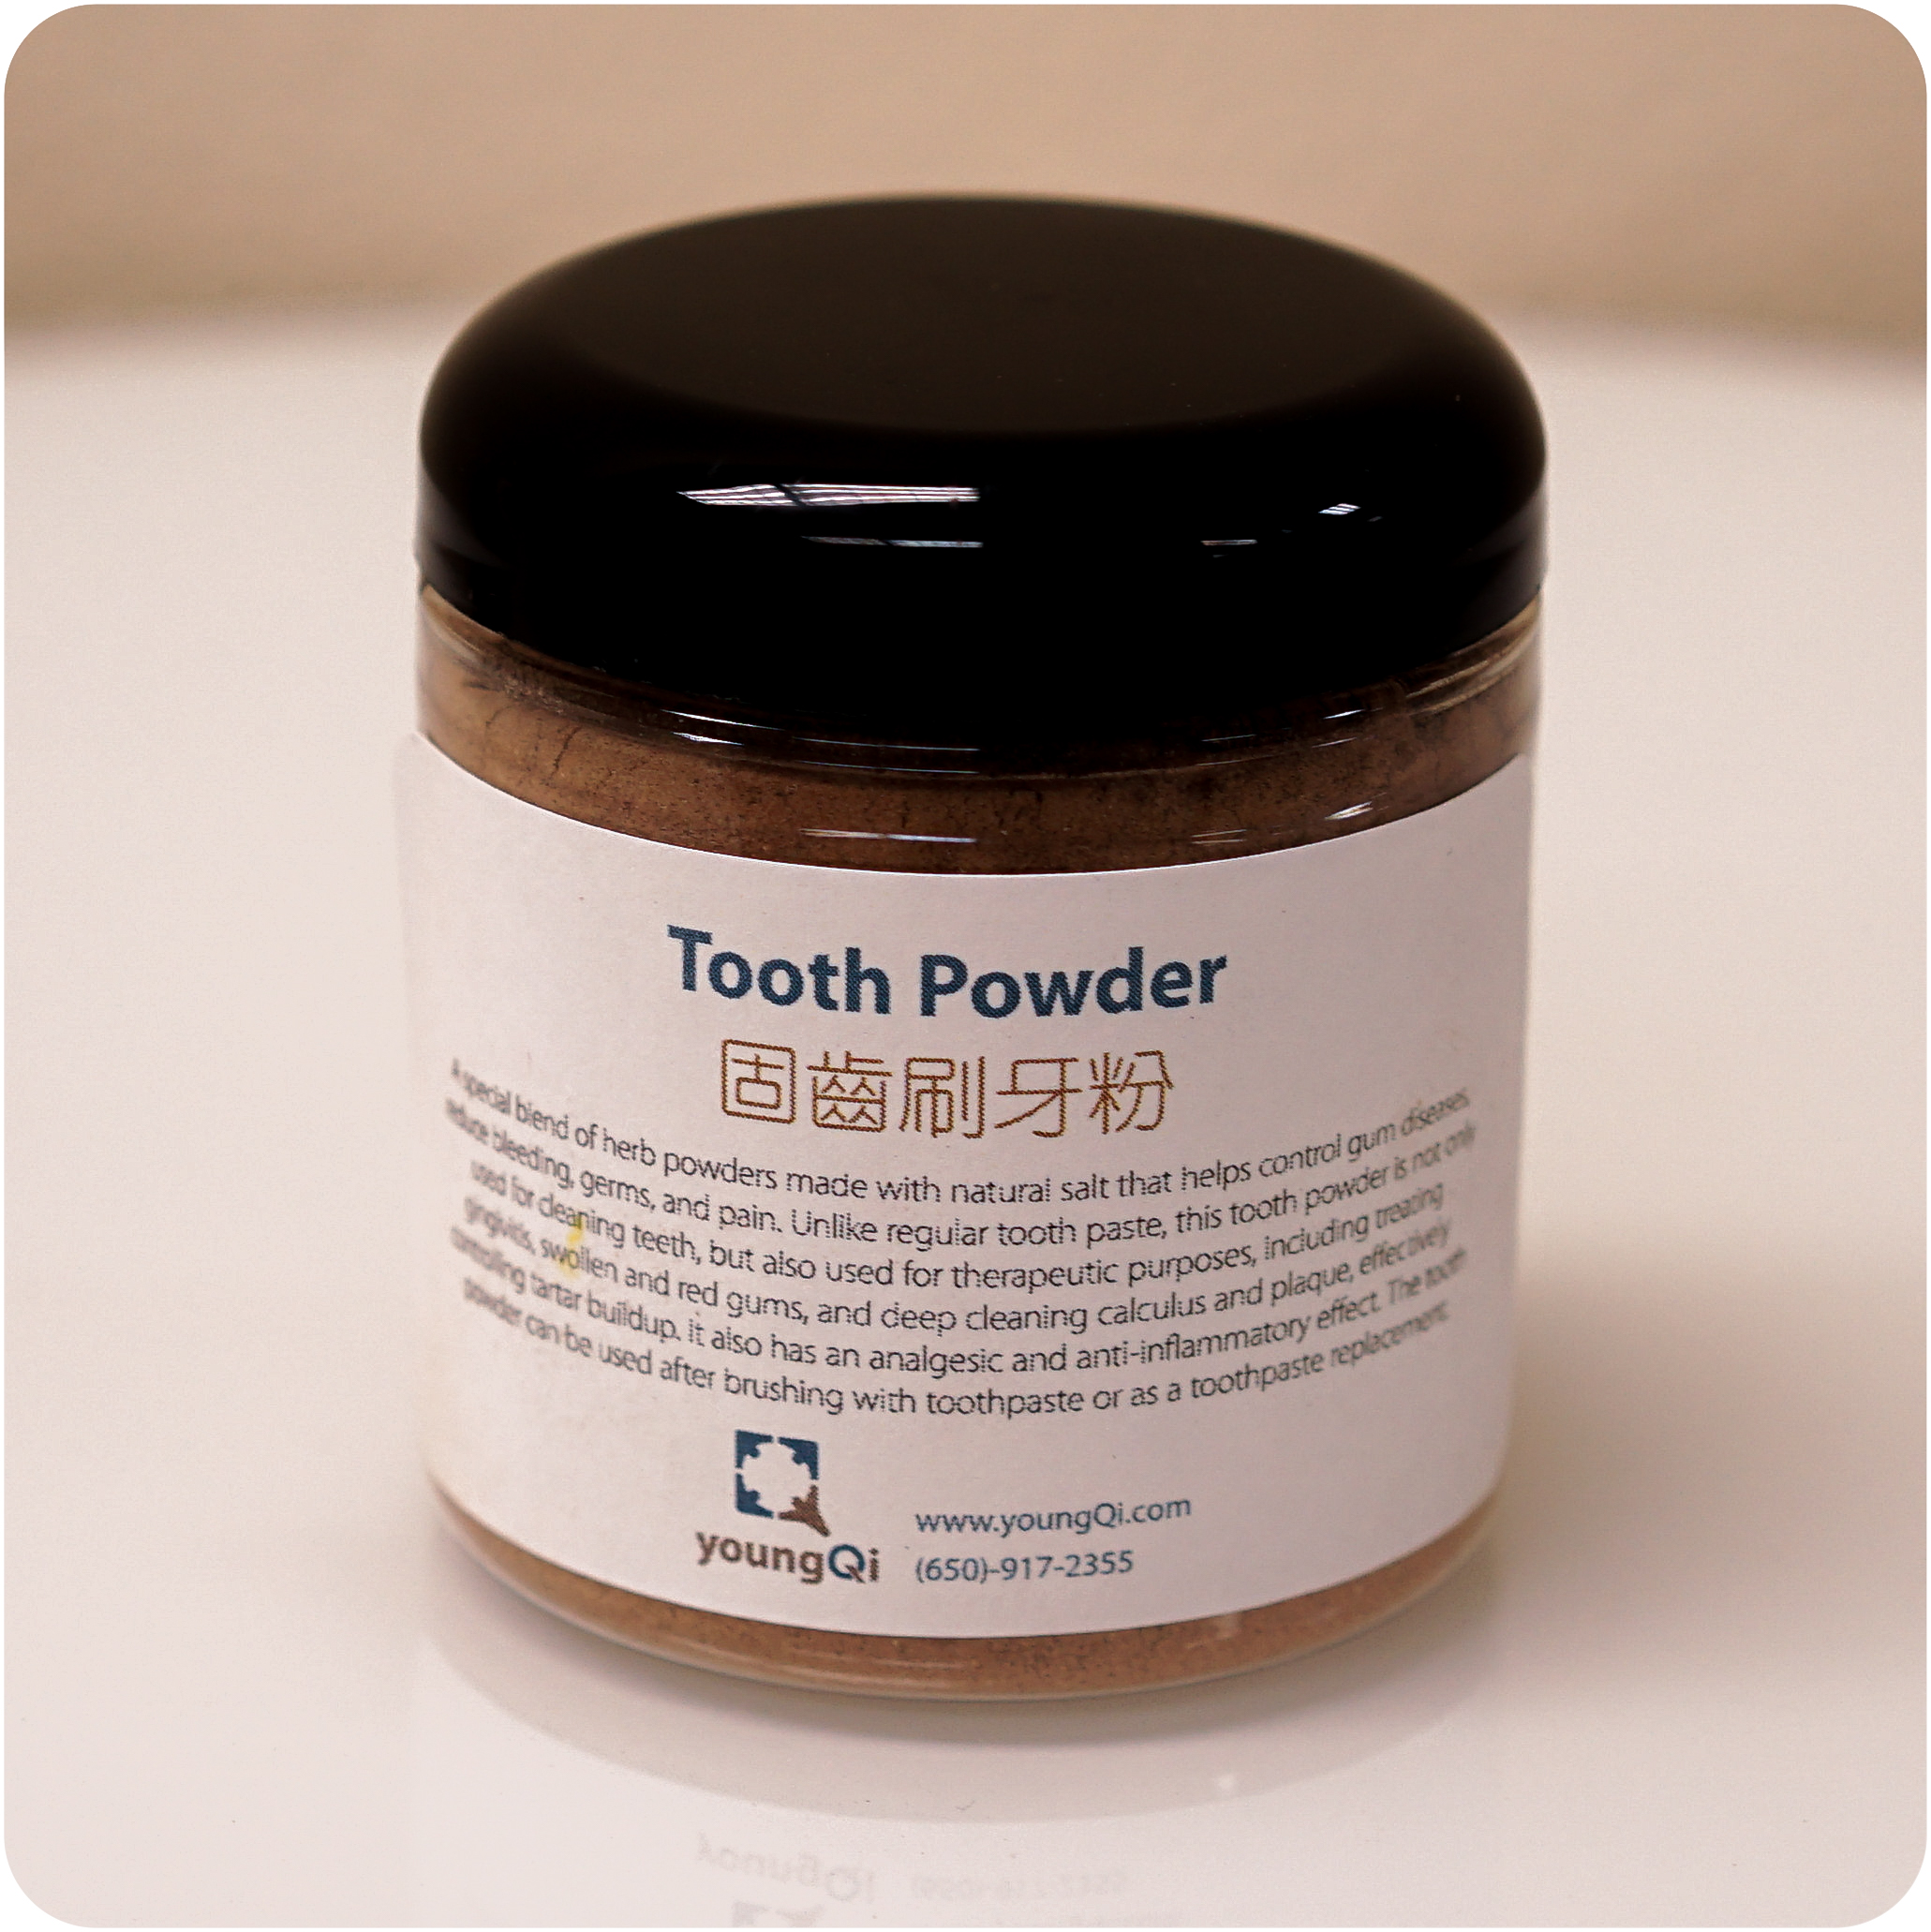 youngQi Tooth Powder